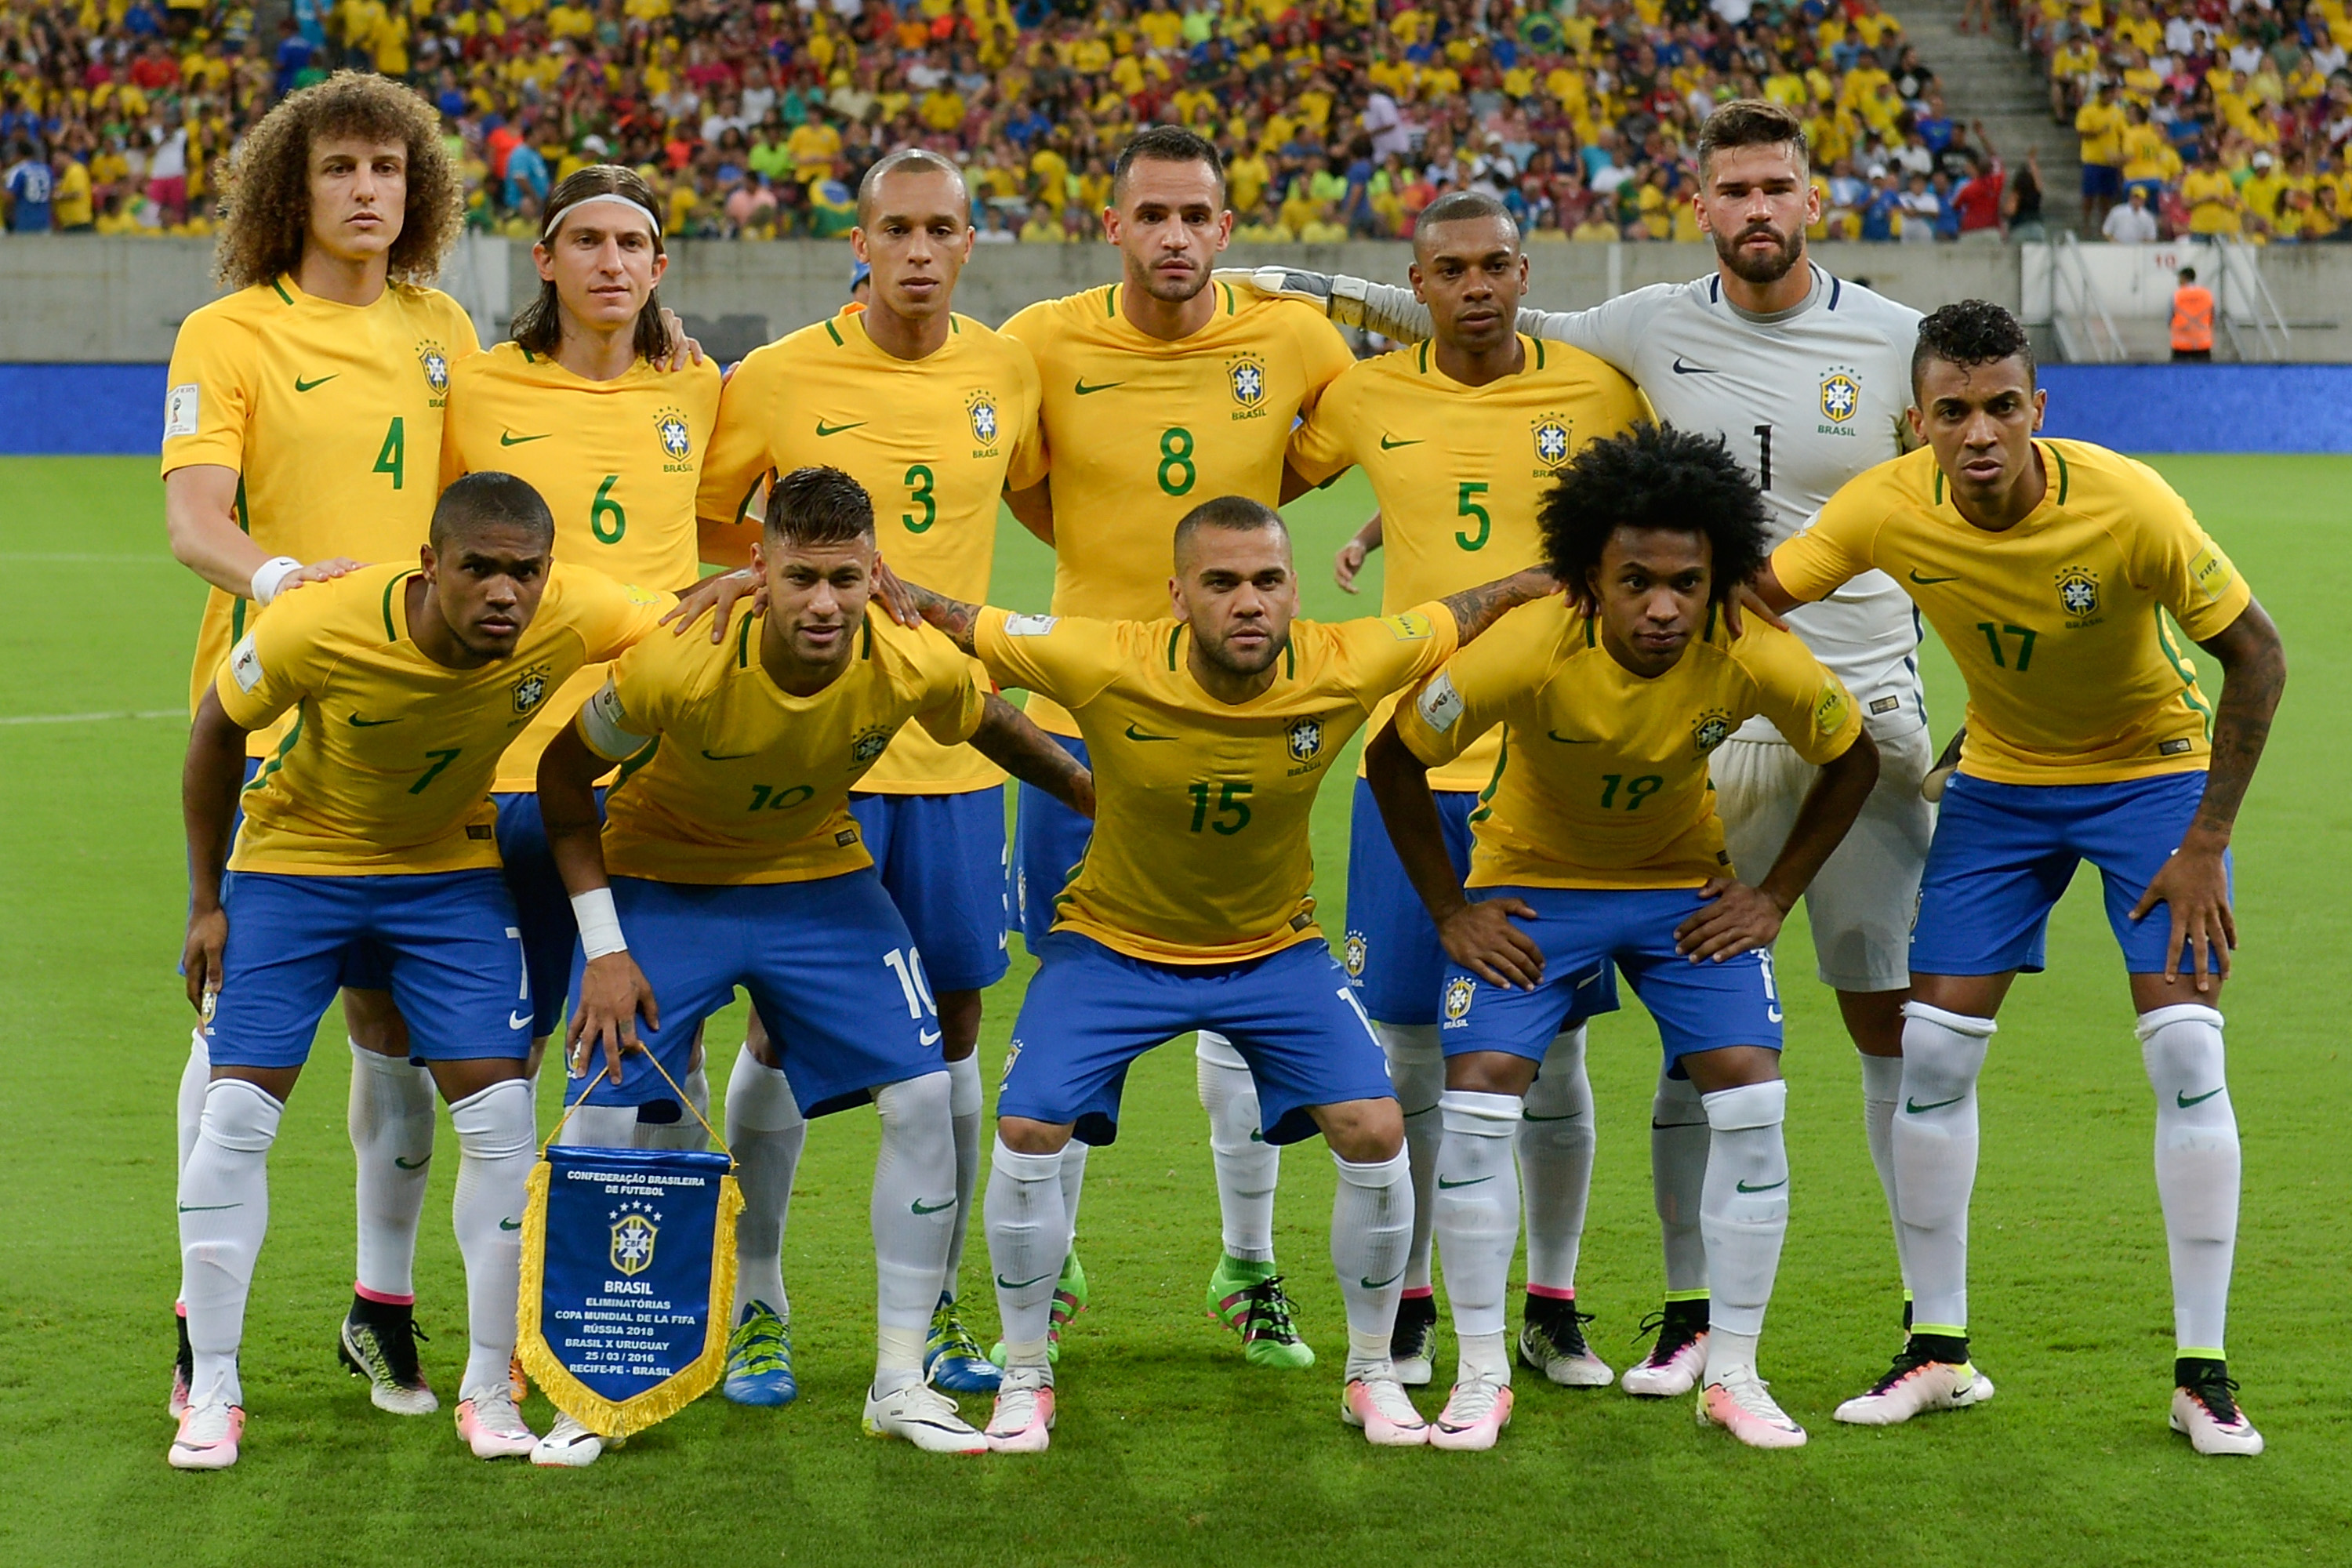 Willian and Brazil, Miazga and USA give up leads and settle for draws